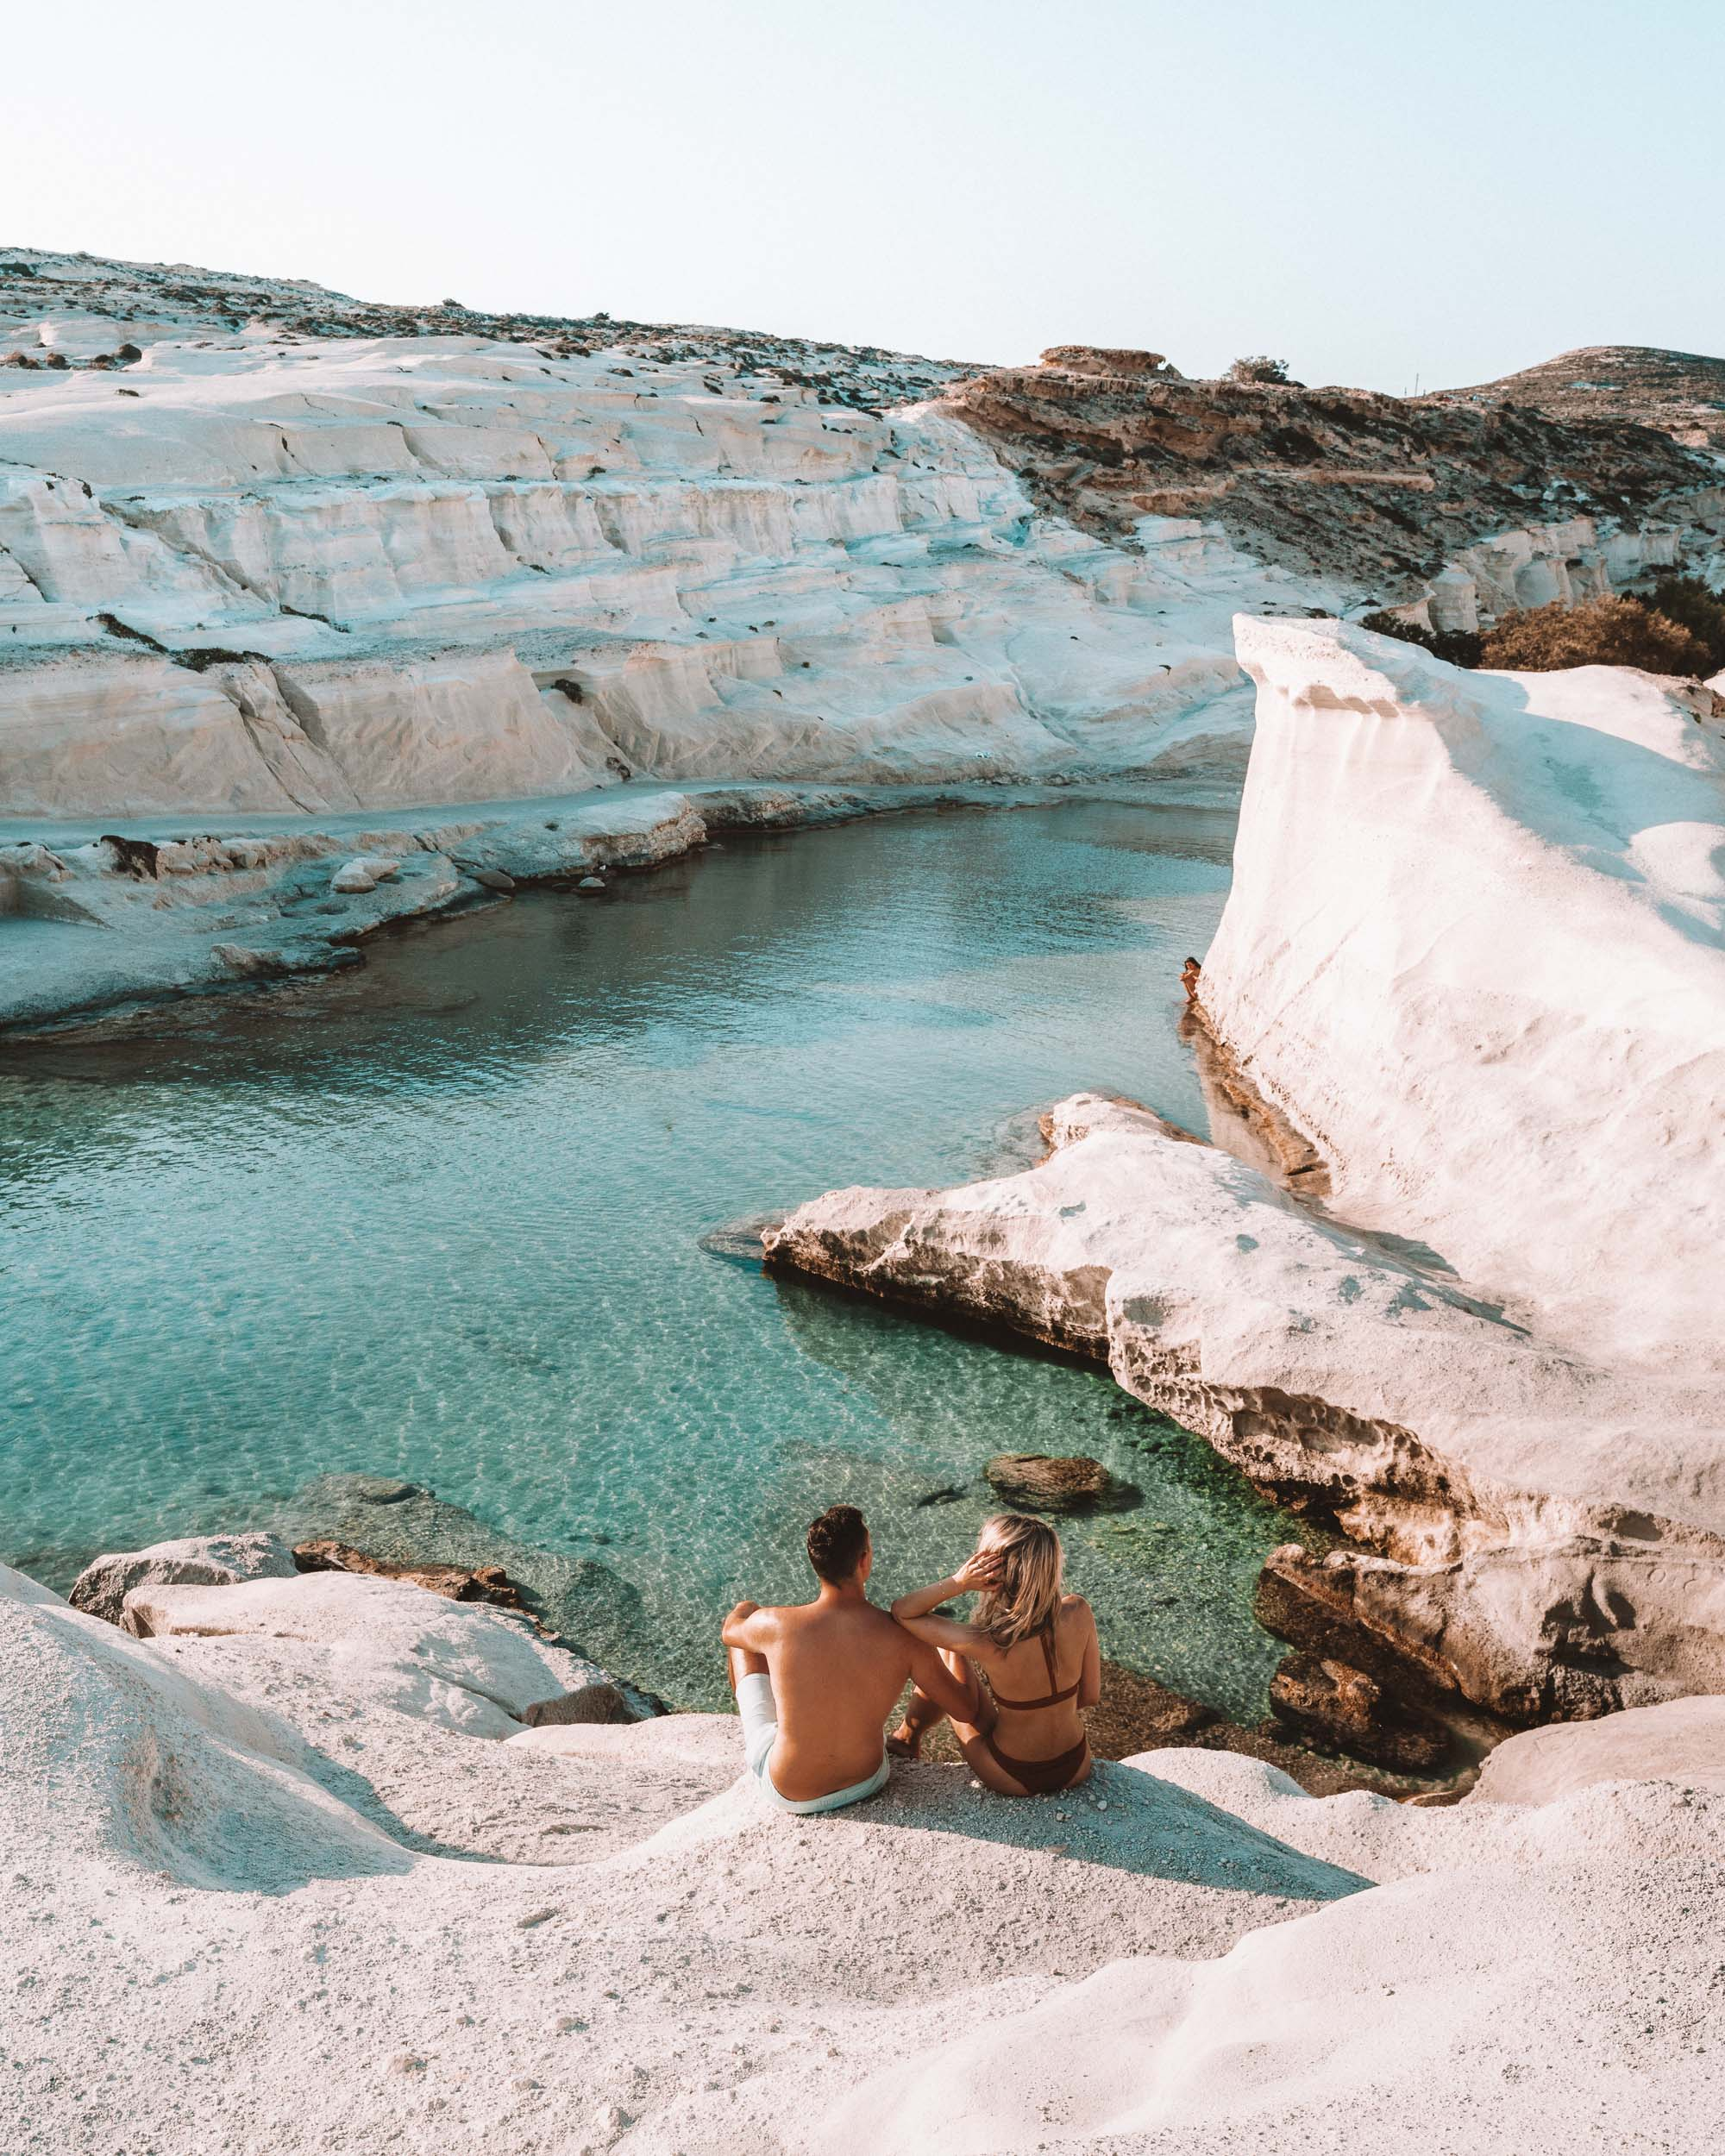 Sarakiniko beach in Milos, Greek Islands via @finduslost